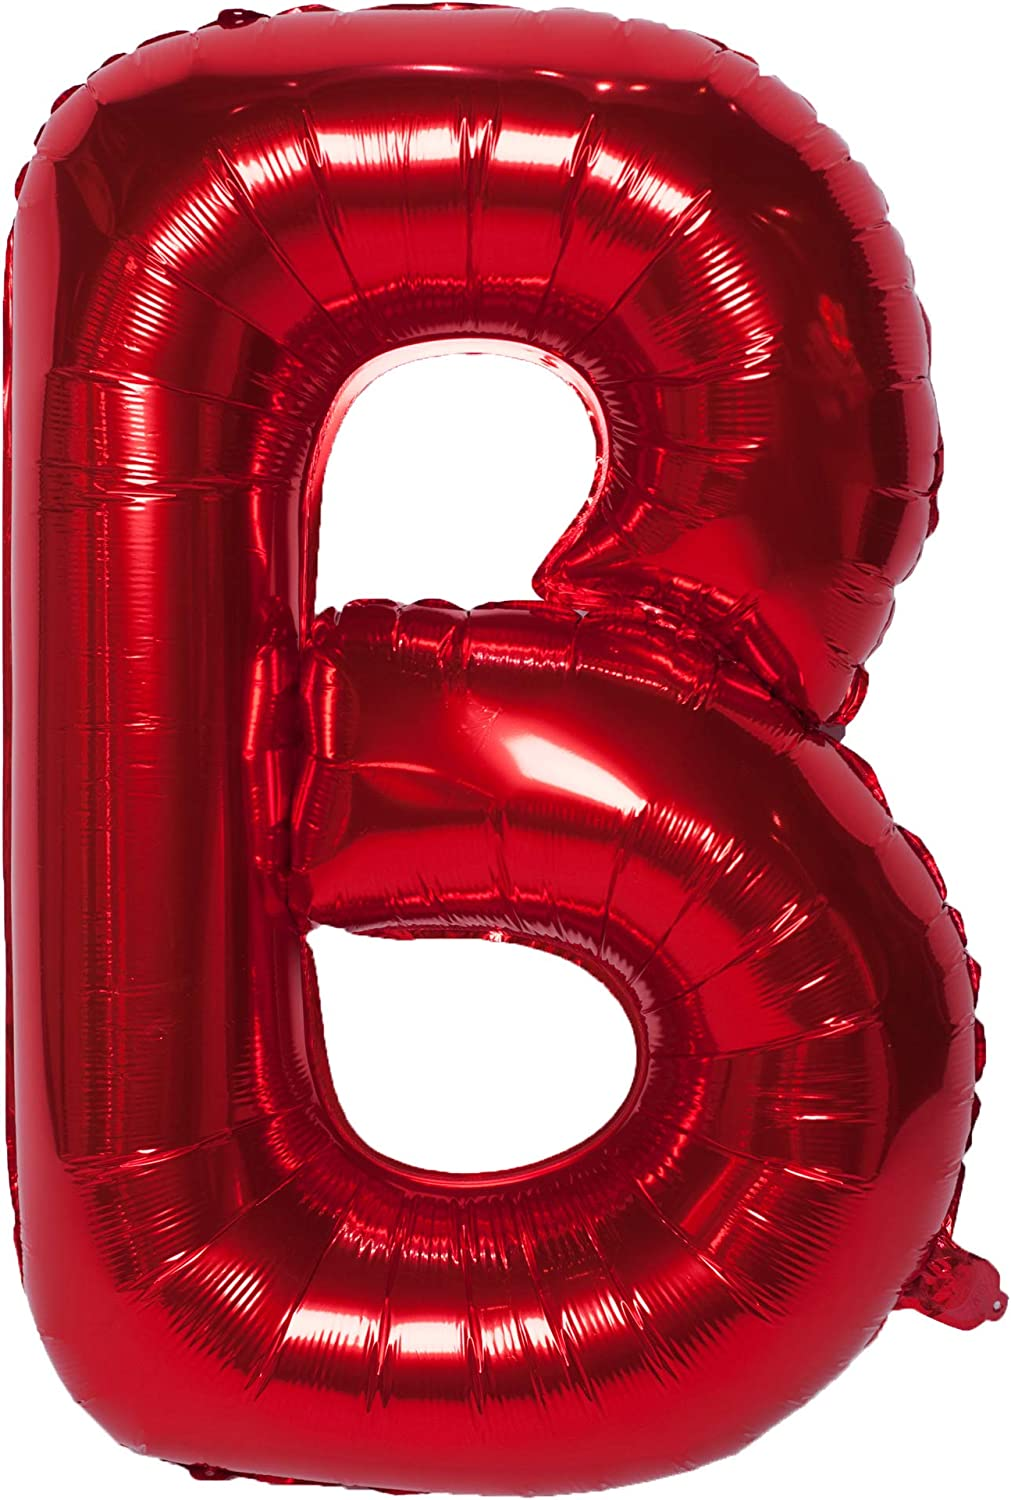 40 Inch Big Letter Alphabet Balloons Red Foil Mylar Balloons for Birthday Party Decoration Wedding Decor Bridal Shower Graduation Anniversary Supplies